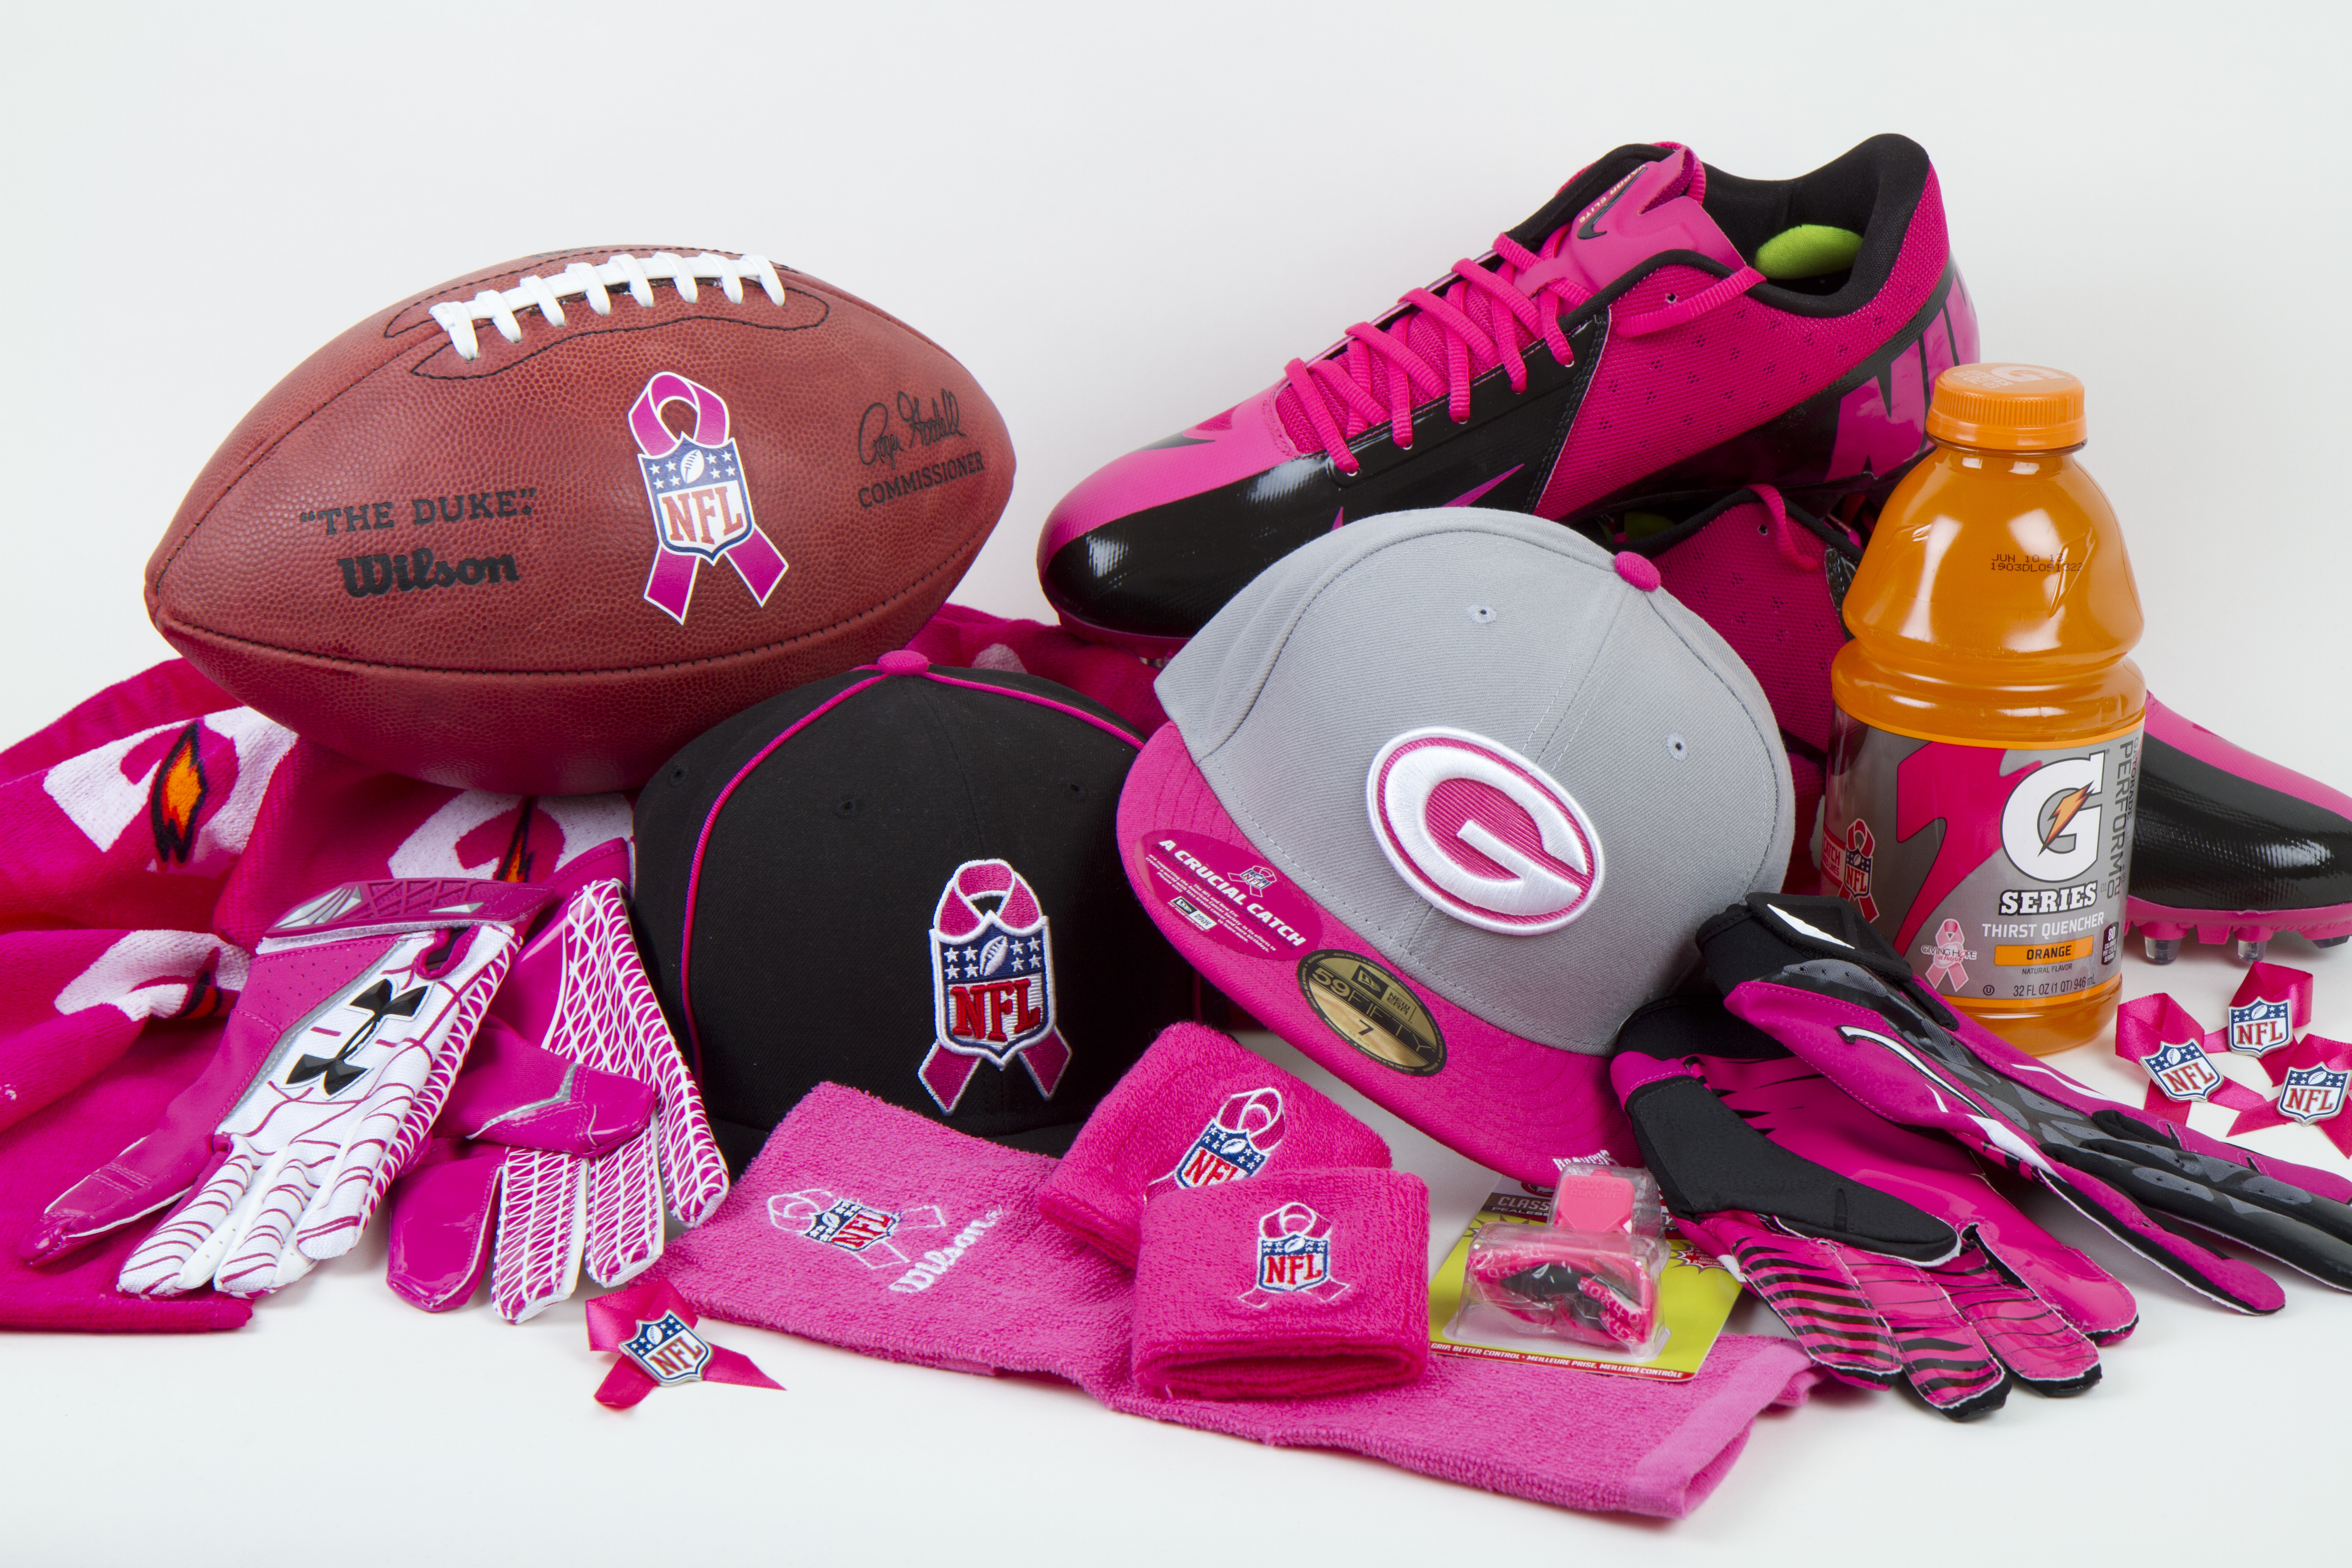 Nfl Breast Cancer Gear Pictures Wallpapers